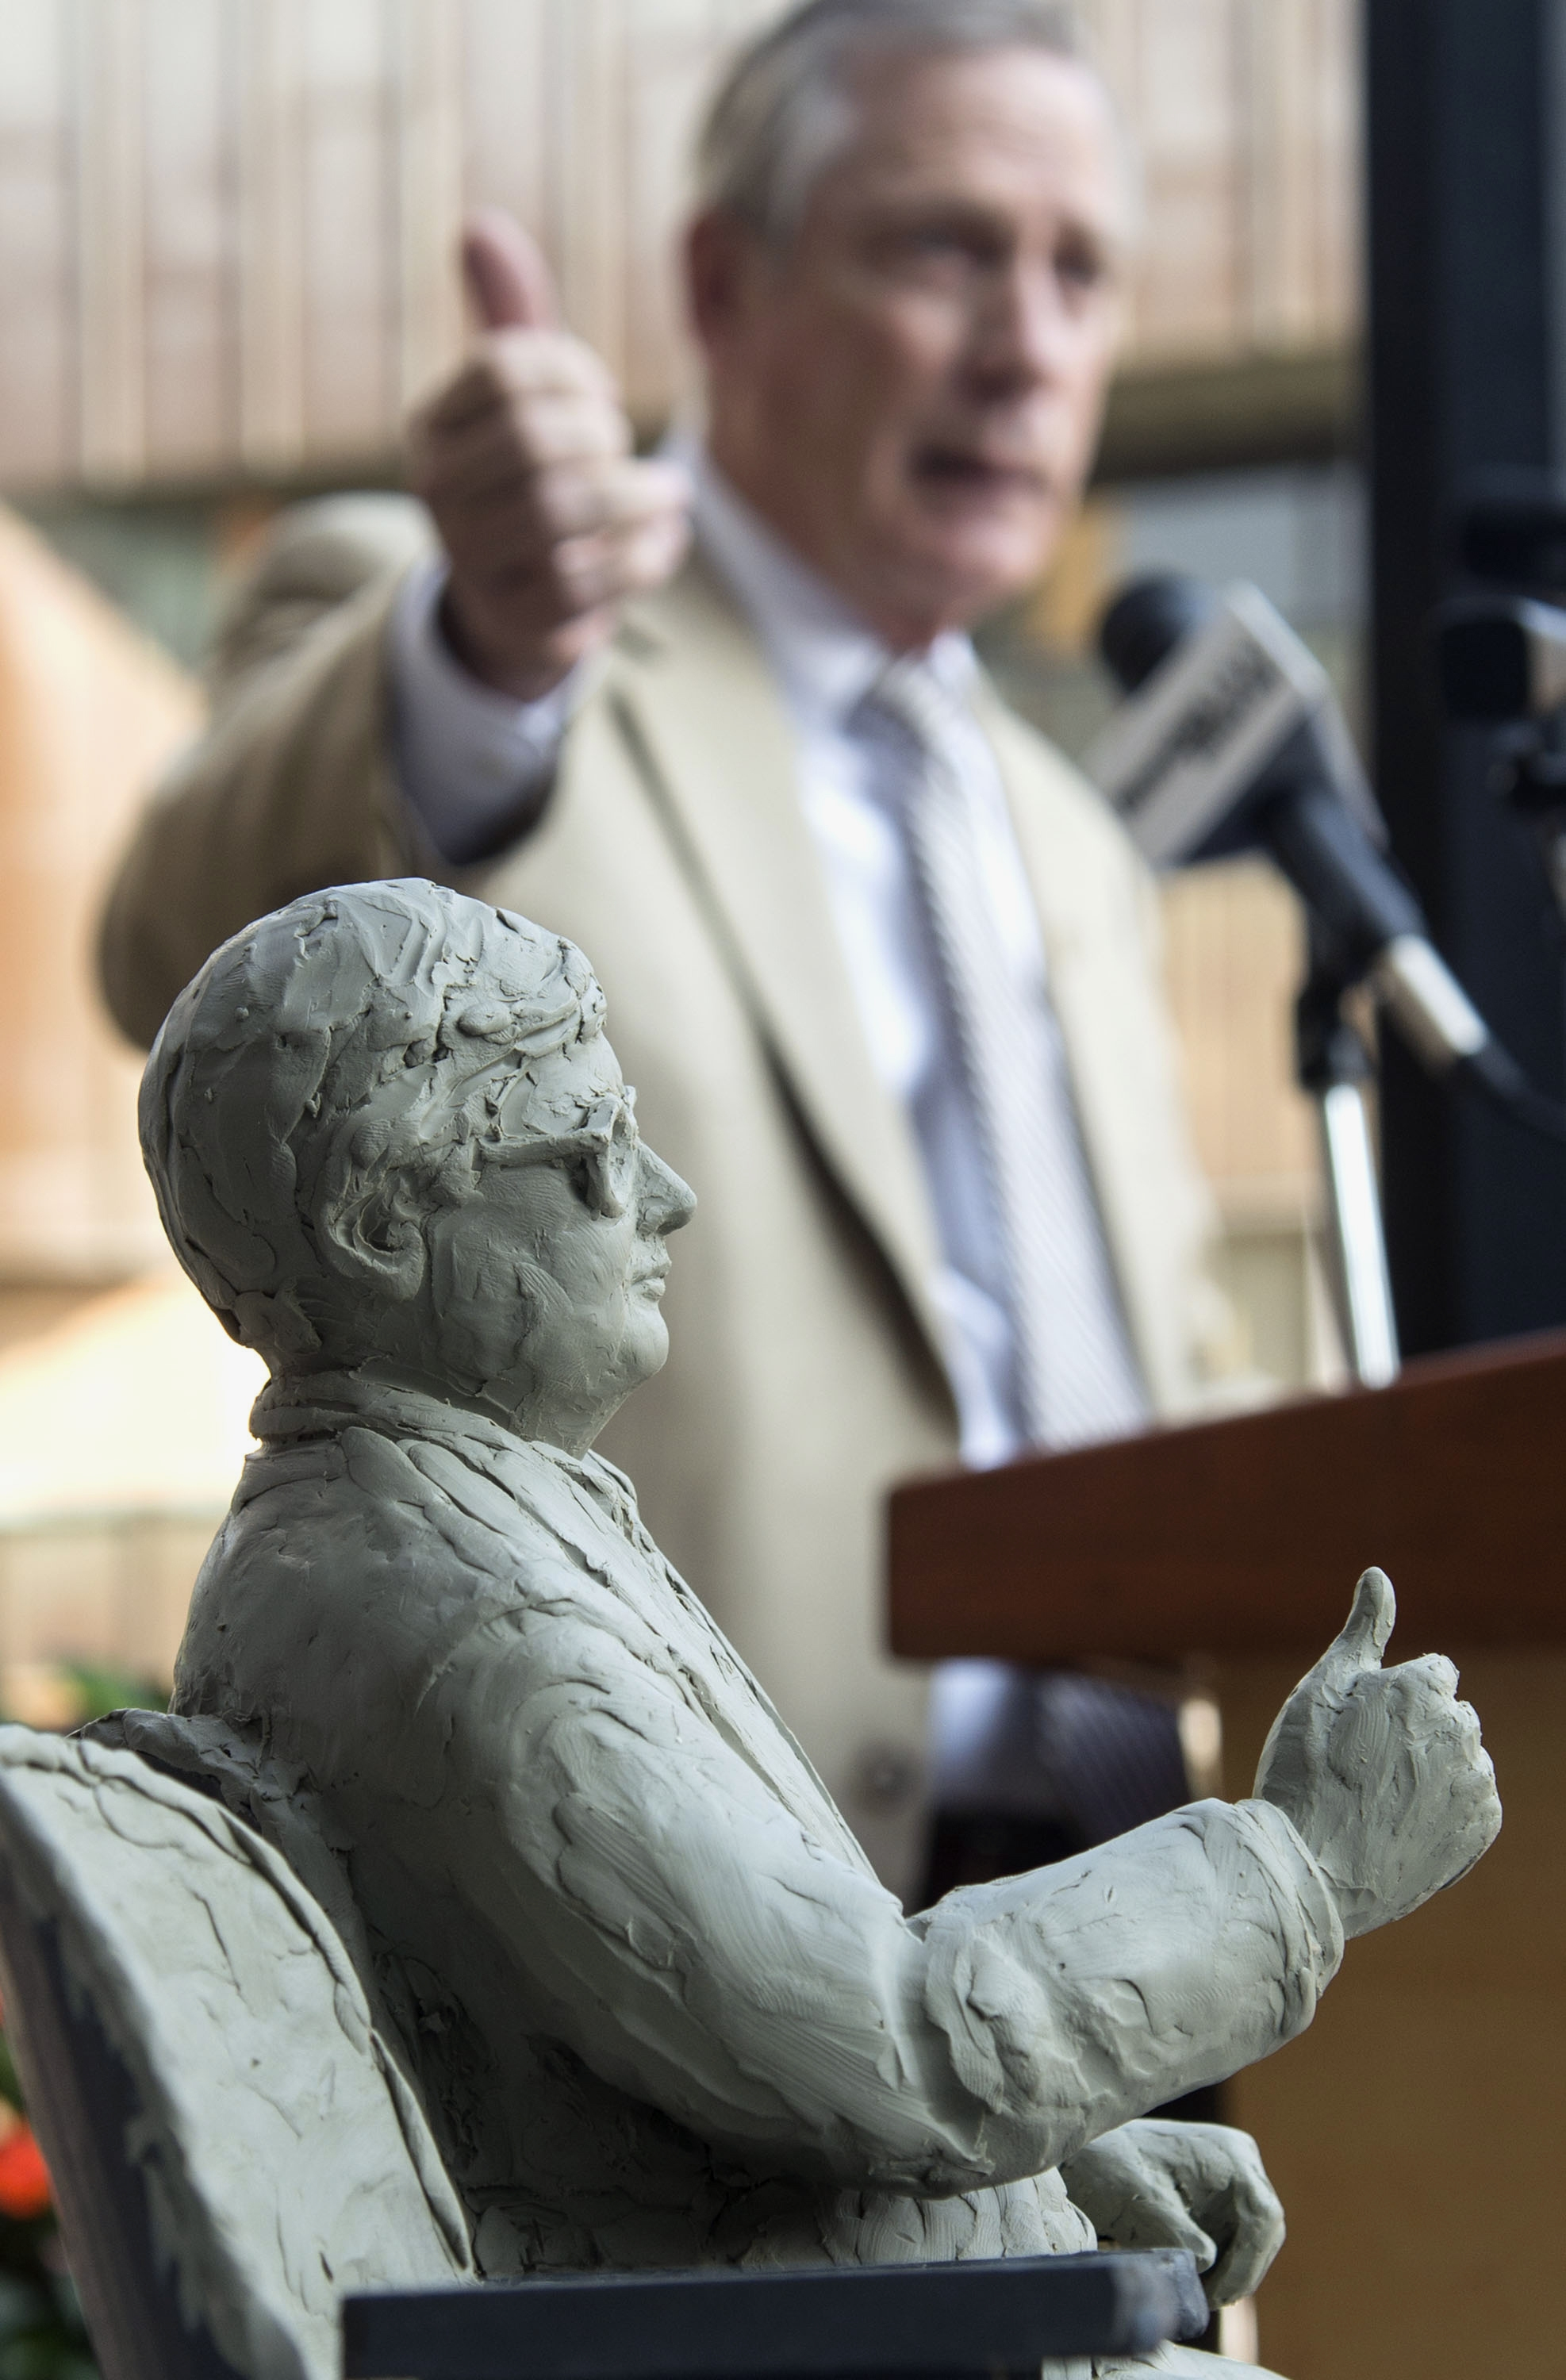 Scott Anderson gives a thumbs up next a scale model of a sculpture of famed film critic Roger Ebert.